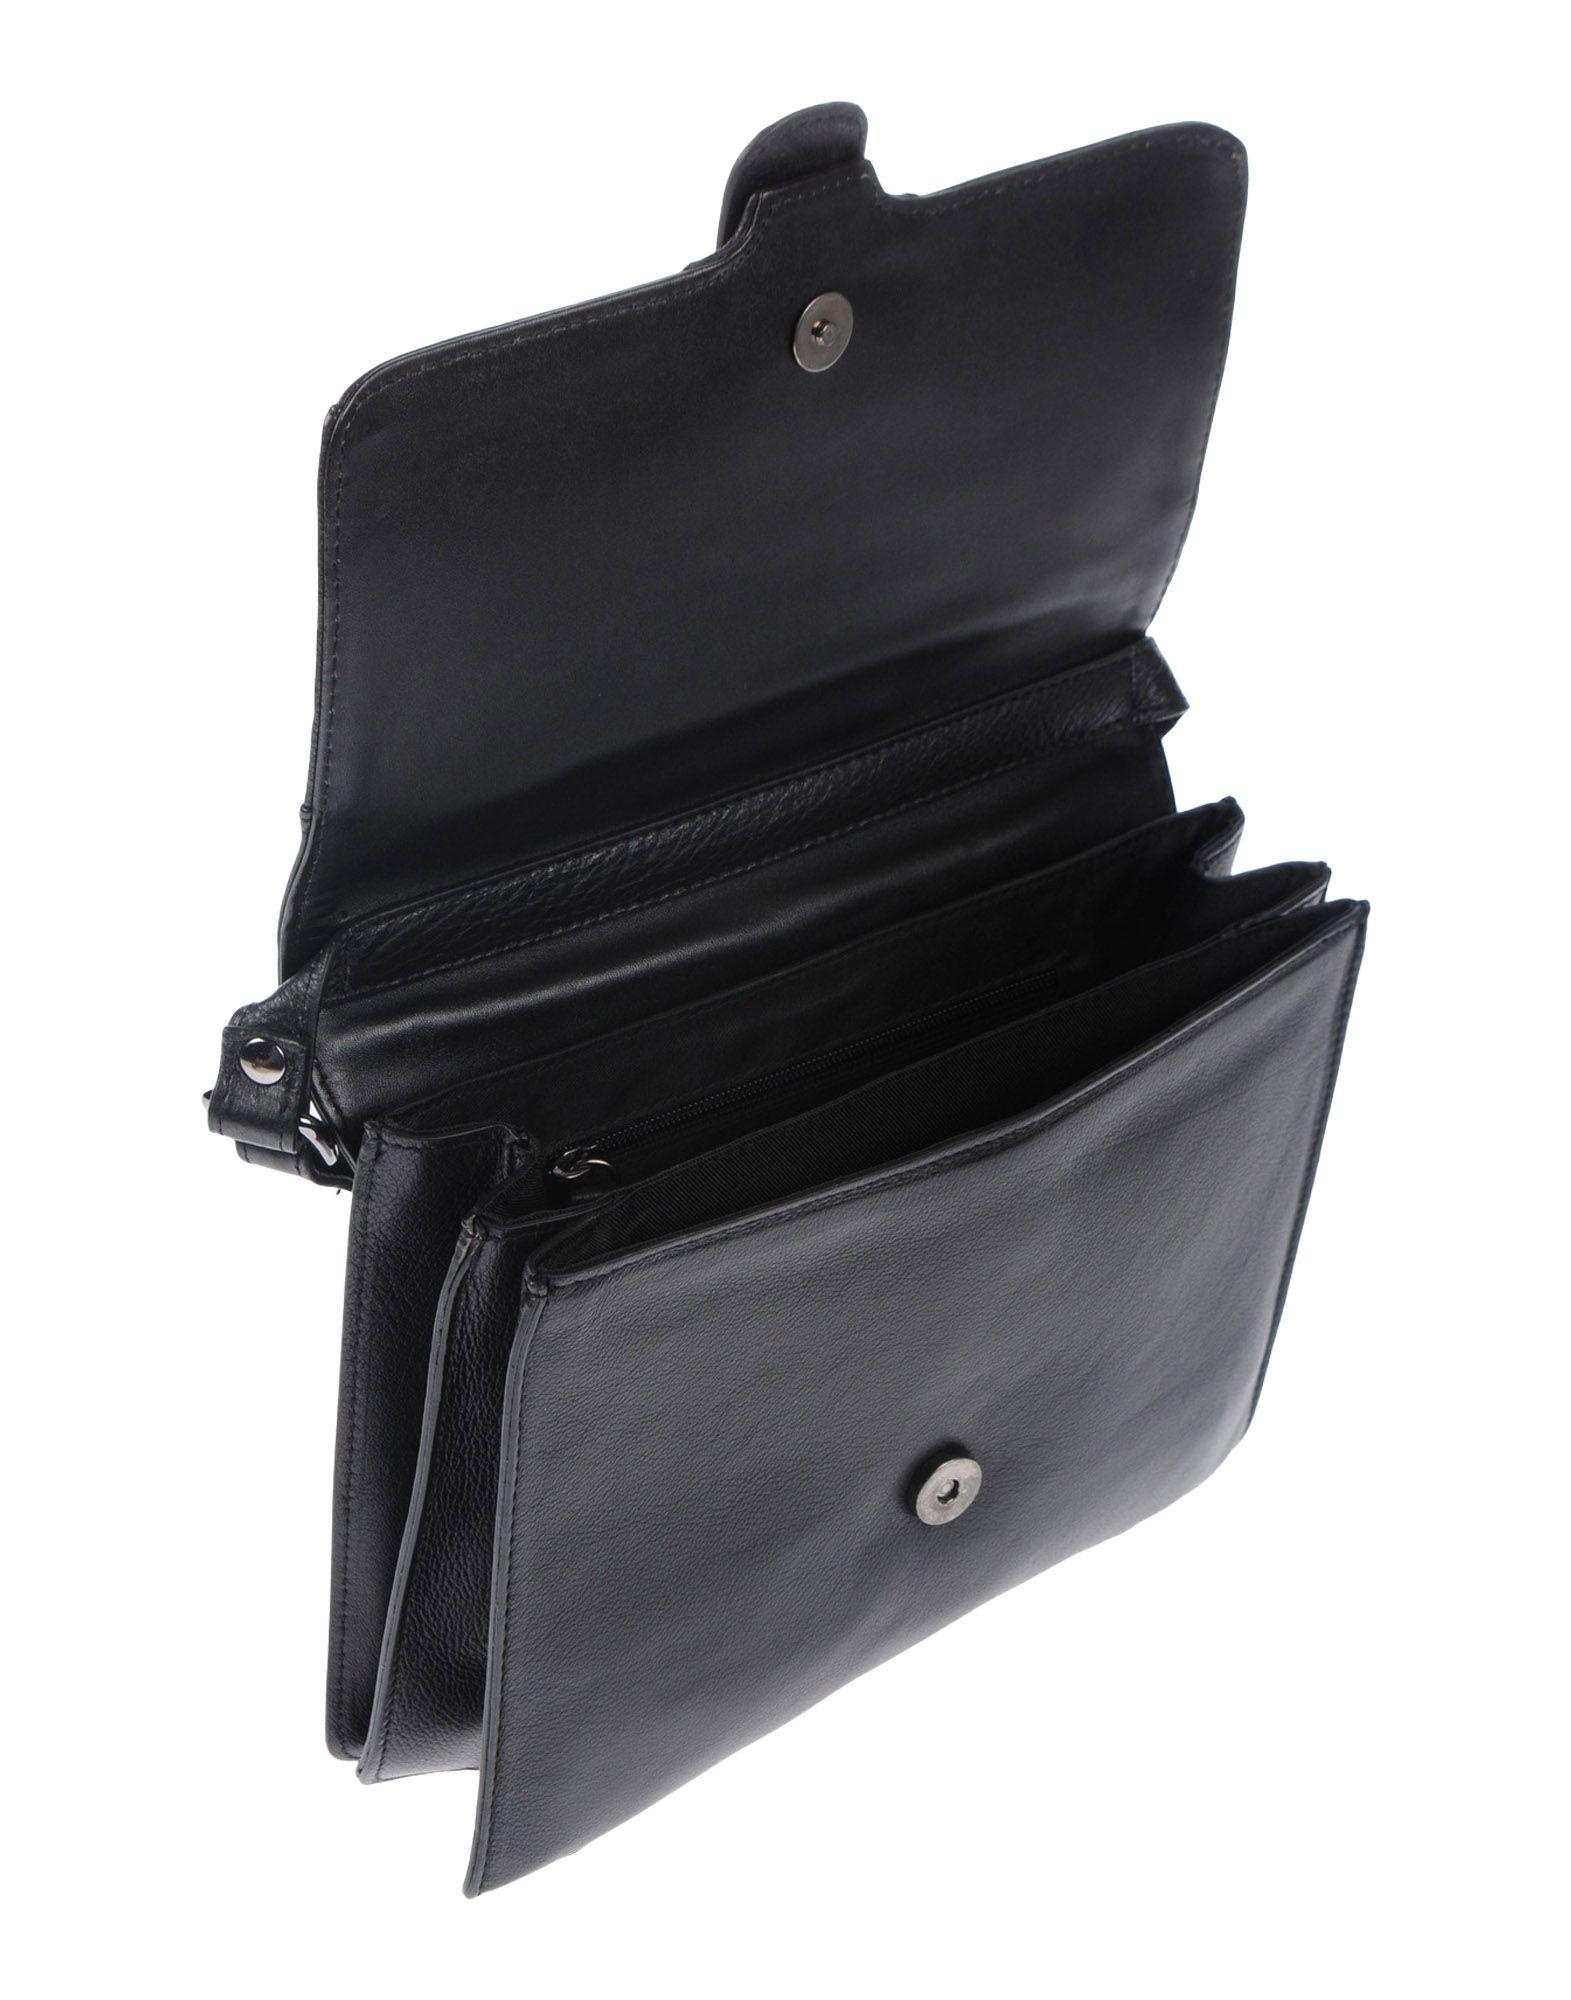 Marc Ellis Leather Cross-body Bags in Black